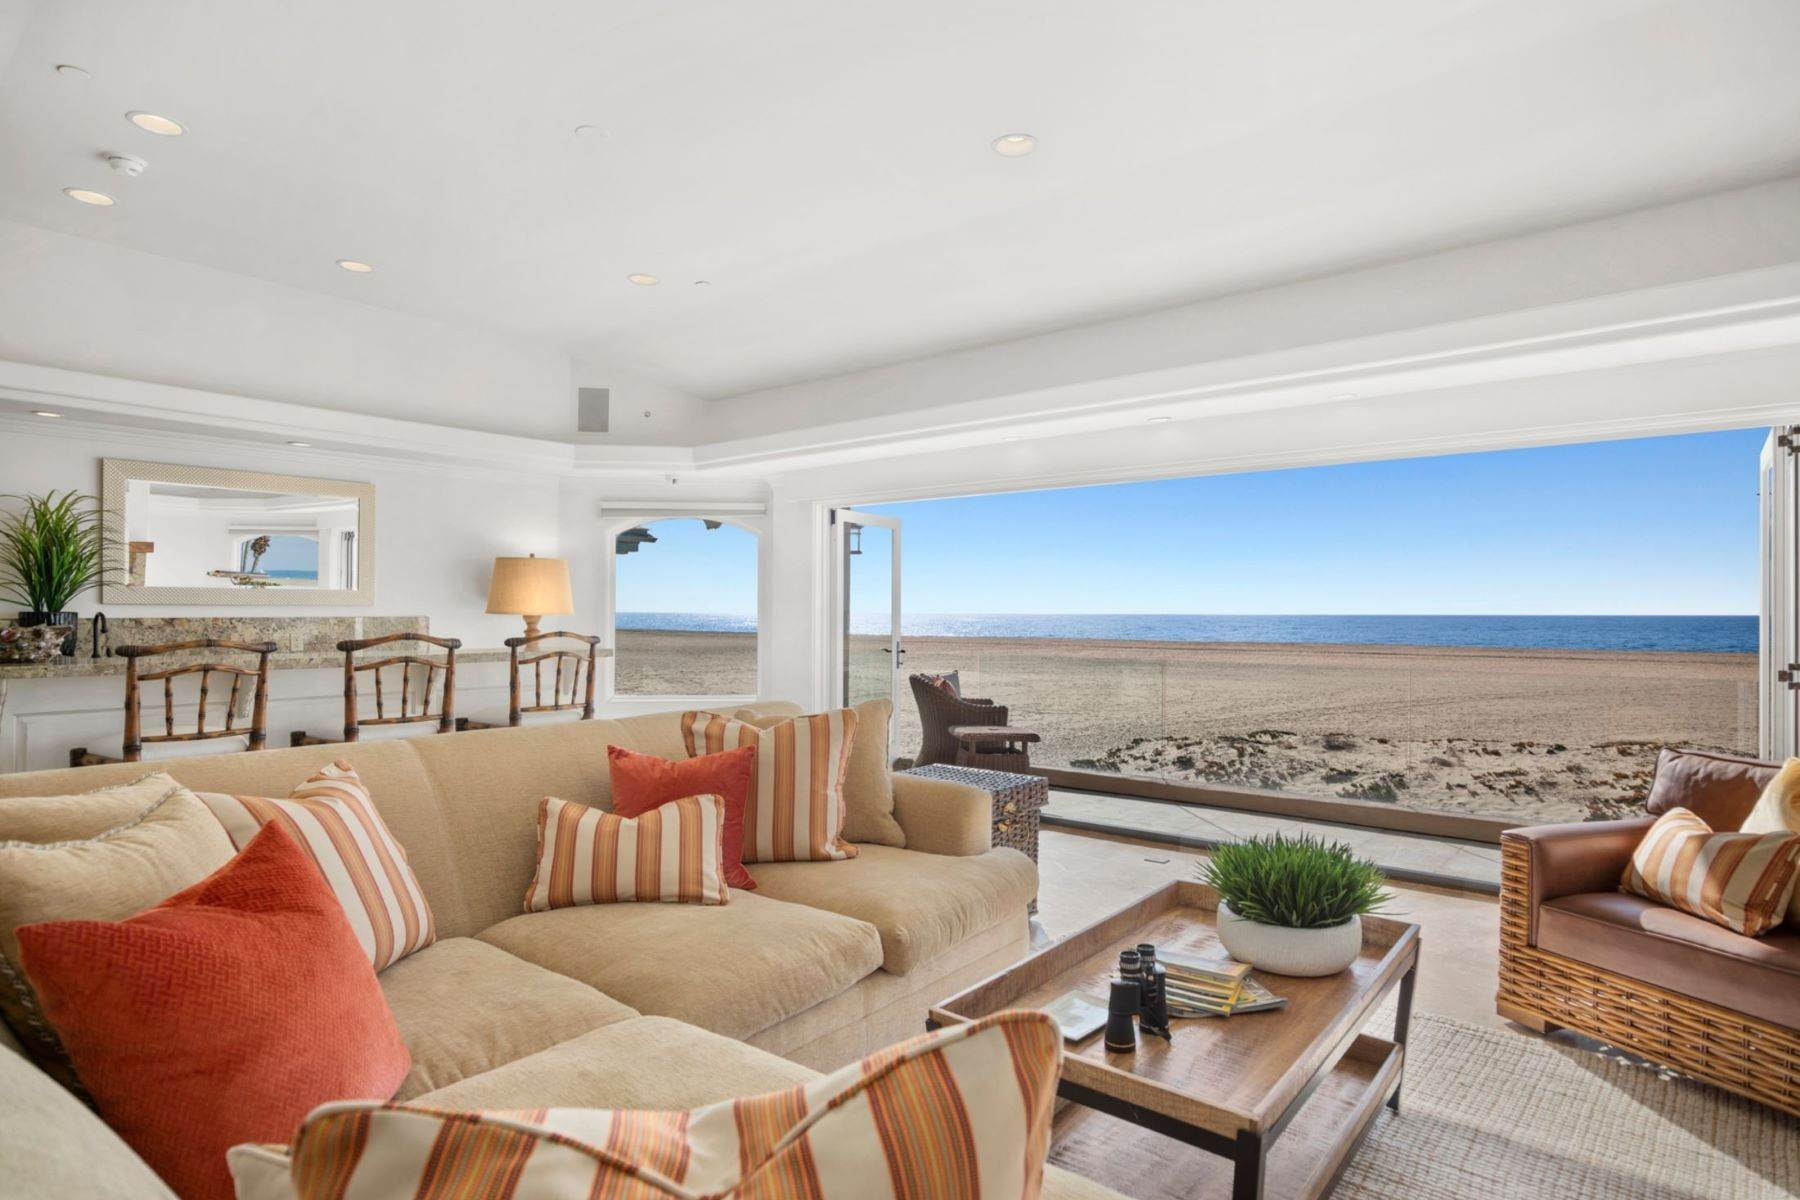 11. Single Family Homes for Sale at 930 Weat Oceanfront 930 W OCEANFRONT Newport Beach, California 92661 United States